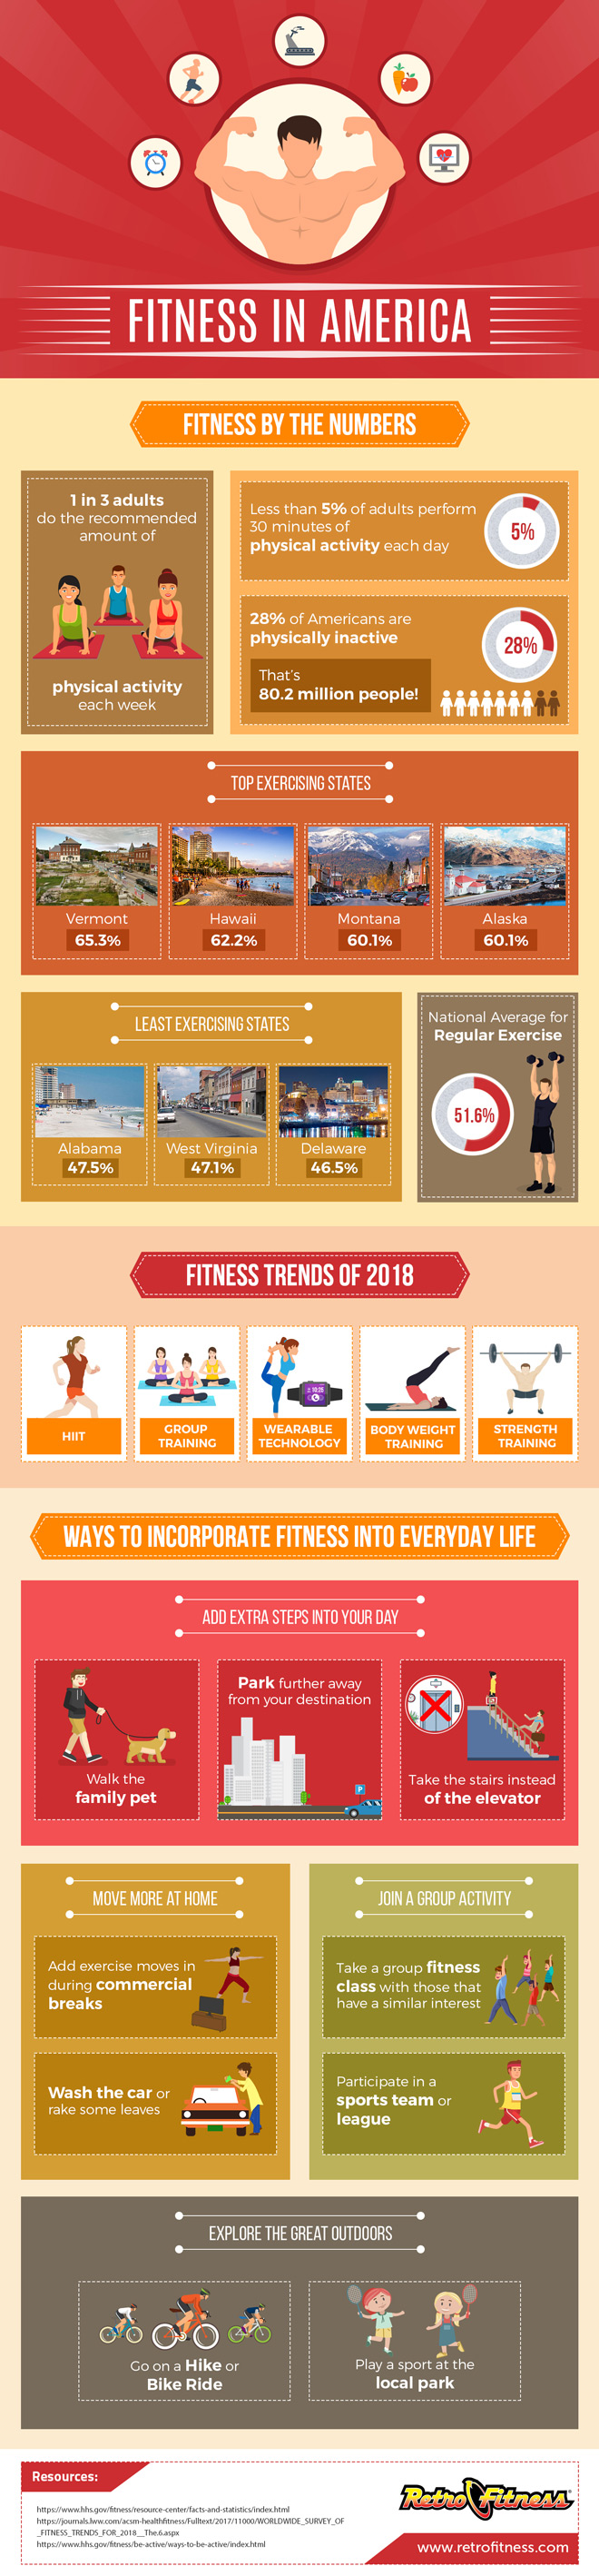 Fitness in america fitness by the numbers